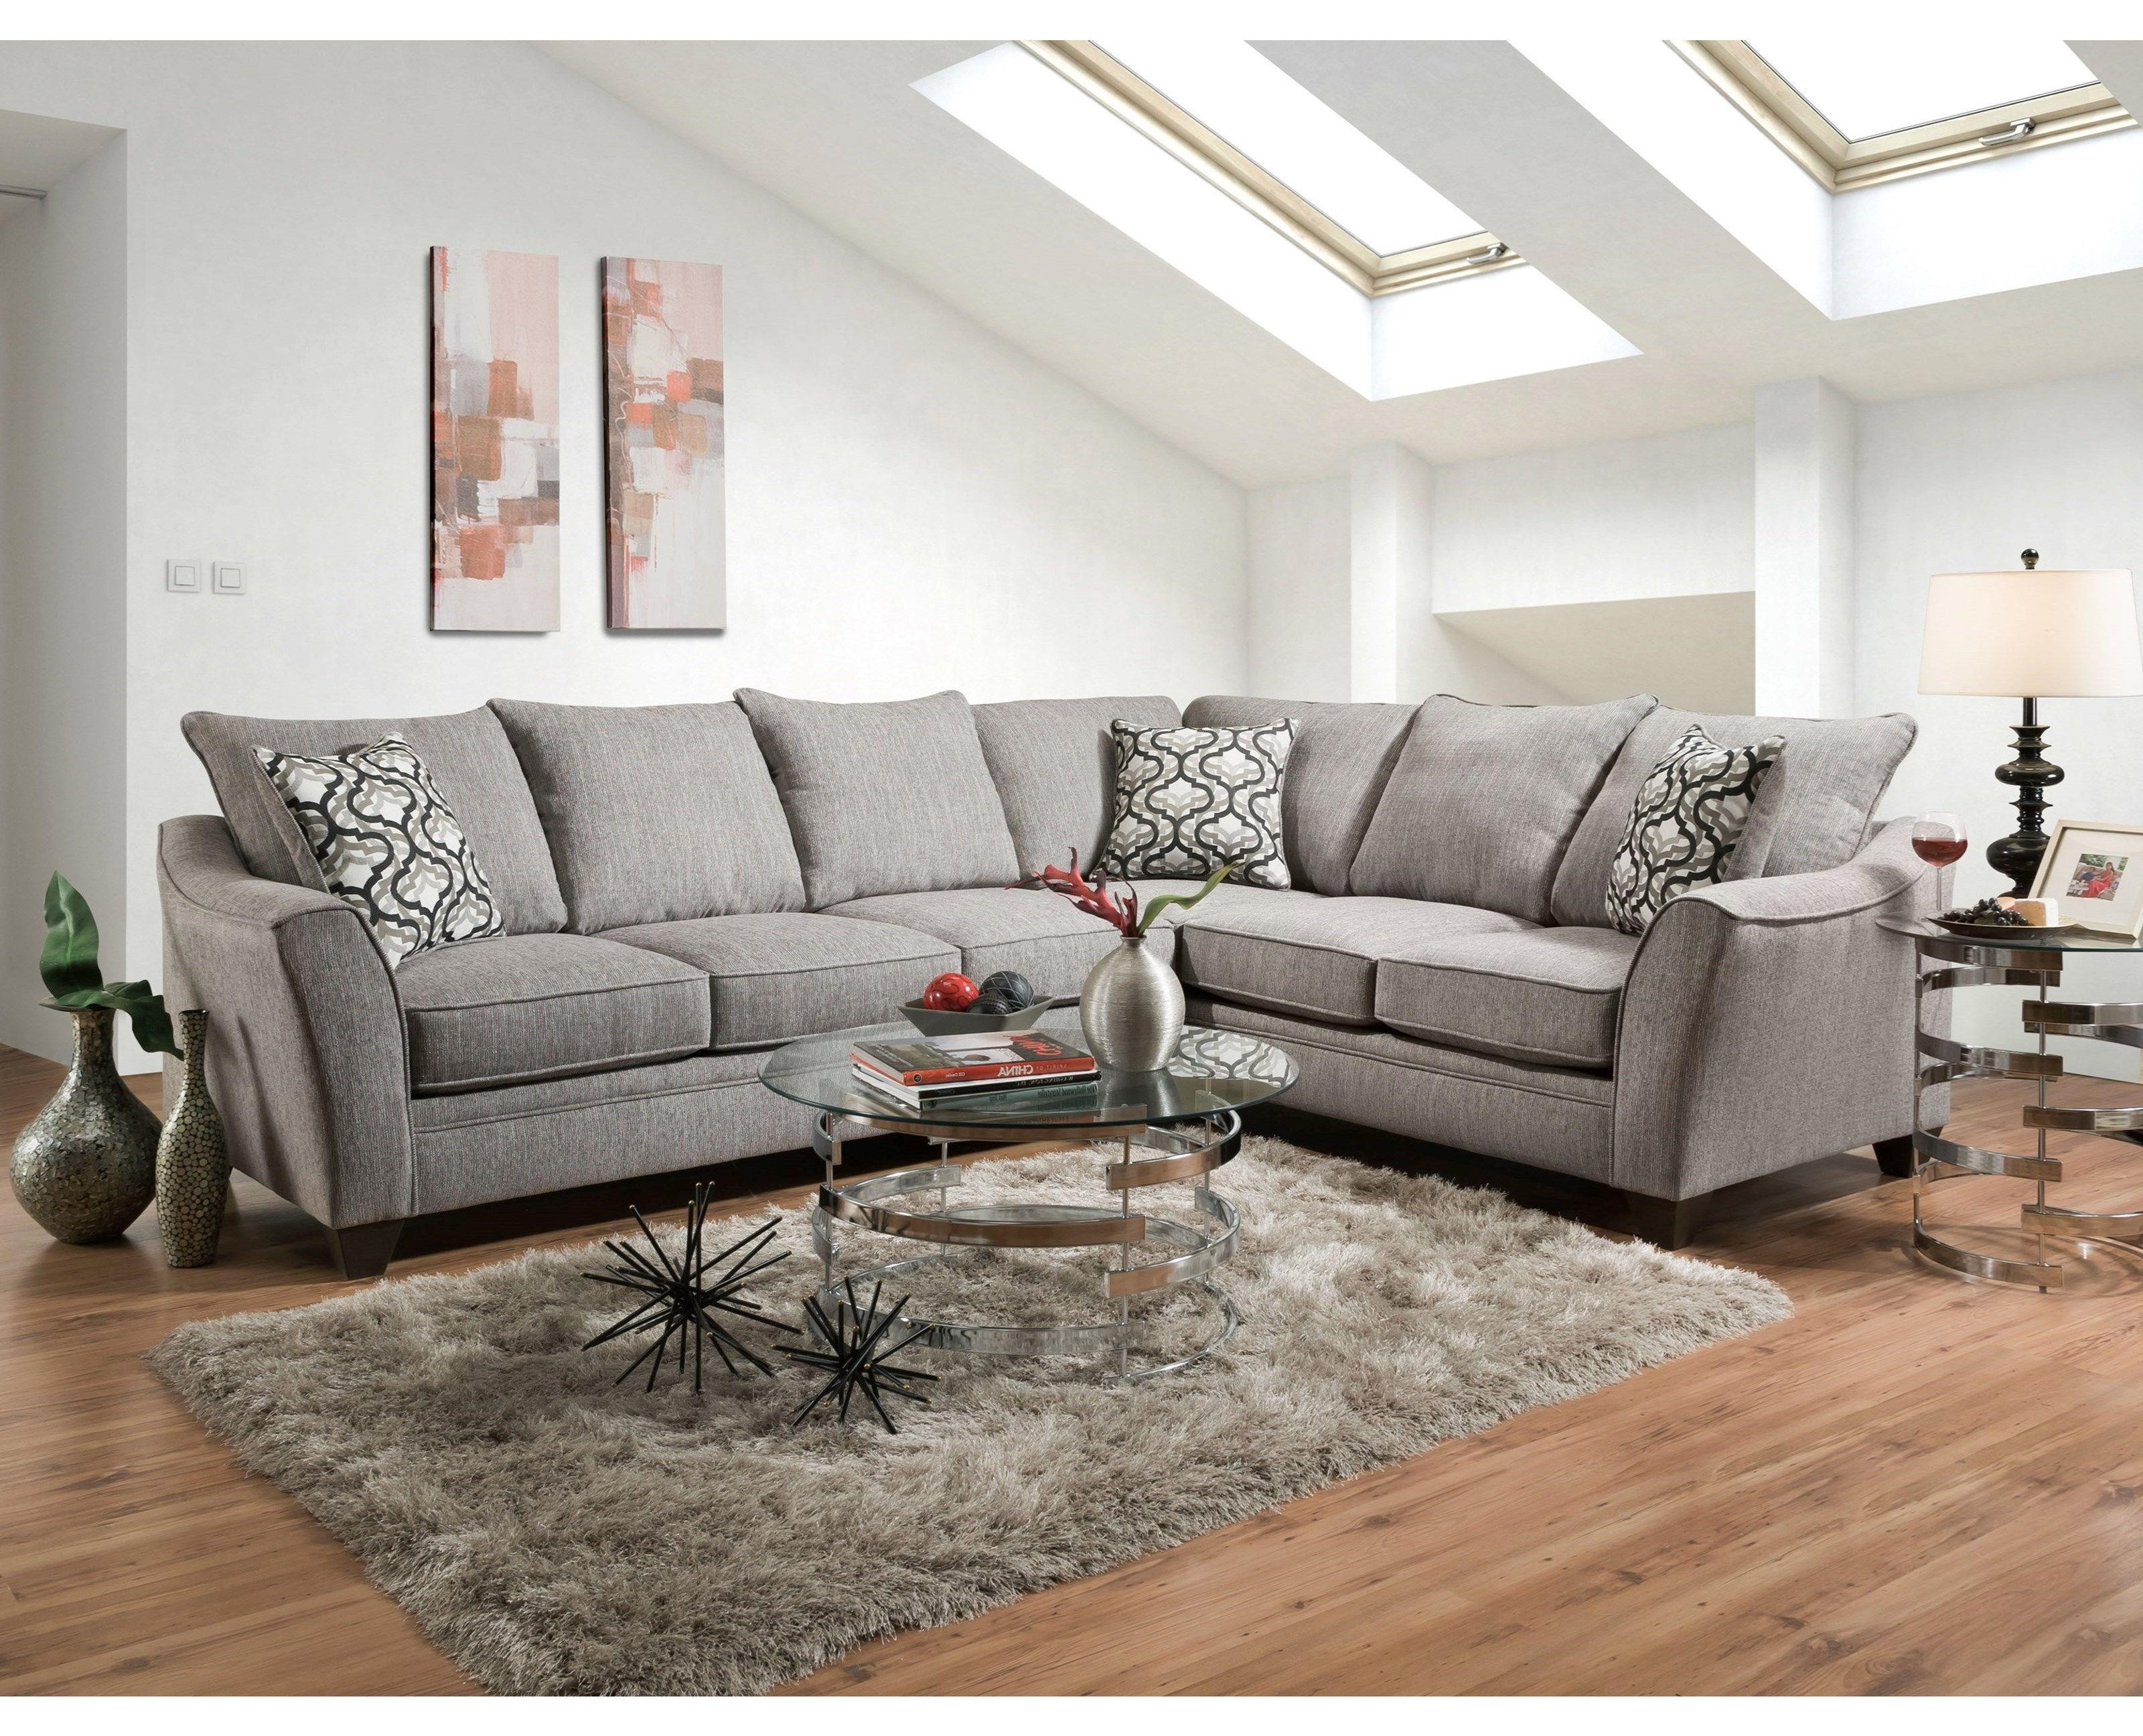 American Sofa Images 4810 5 Seat Sectional Sofa By American Furniture At Miskelly Furniture